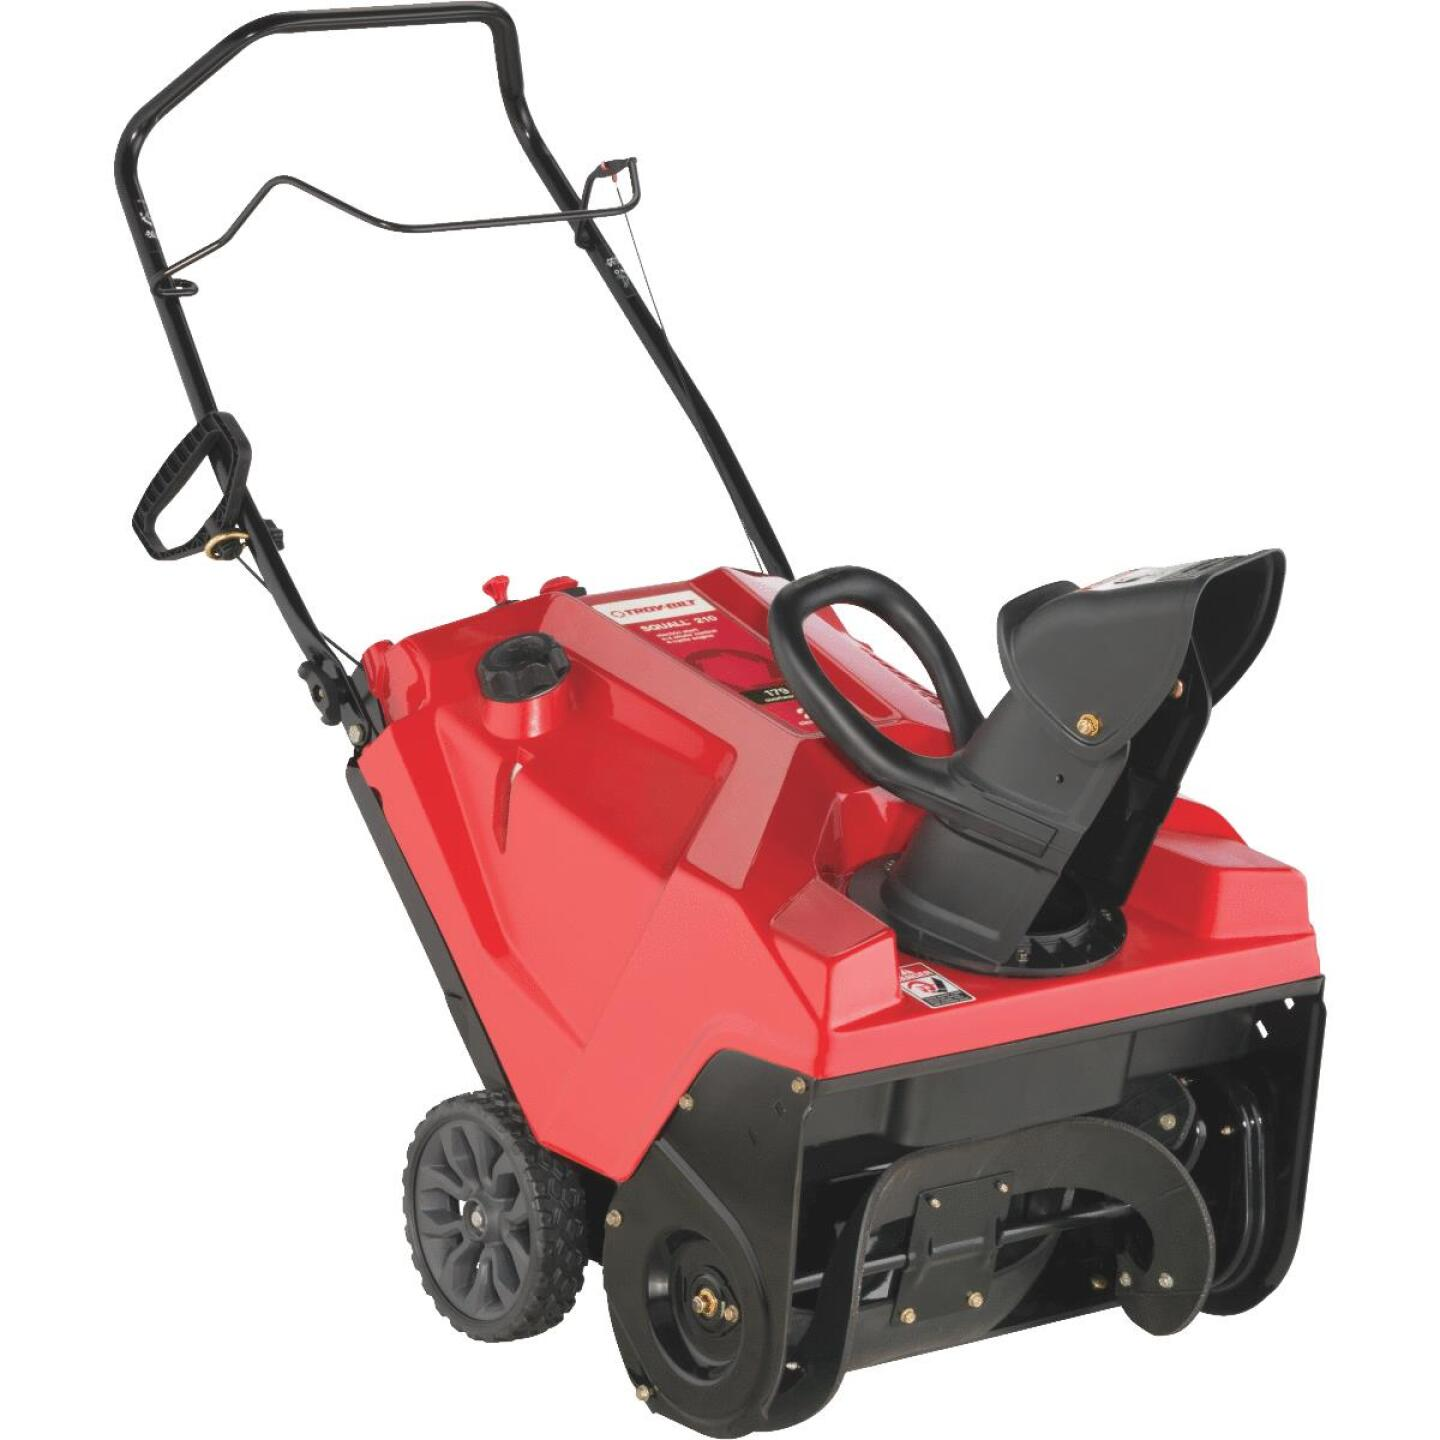 Troy-Bilt Squall 210 21 In. 179cc Single-Stage Gas Snow Blower Image 2